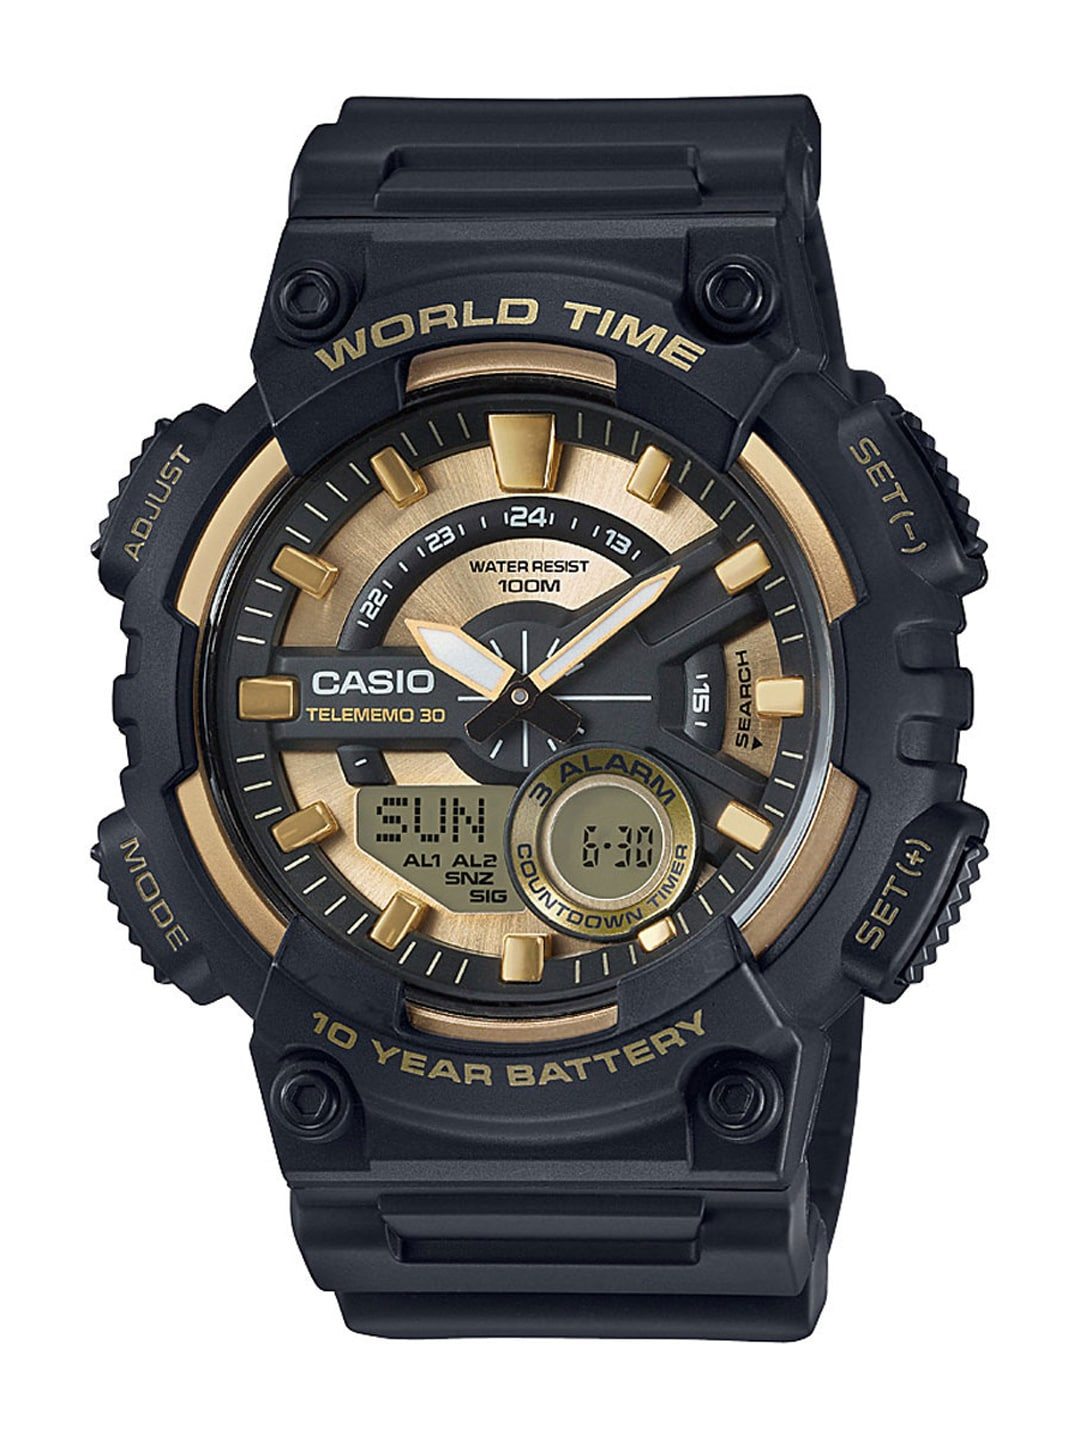 b66e0321365 Casio Watches for Men - Buy Mens Casio Watch in India